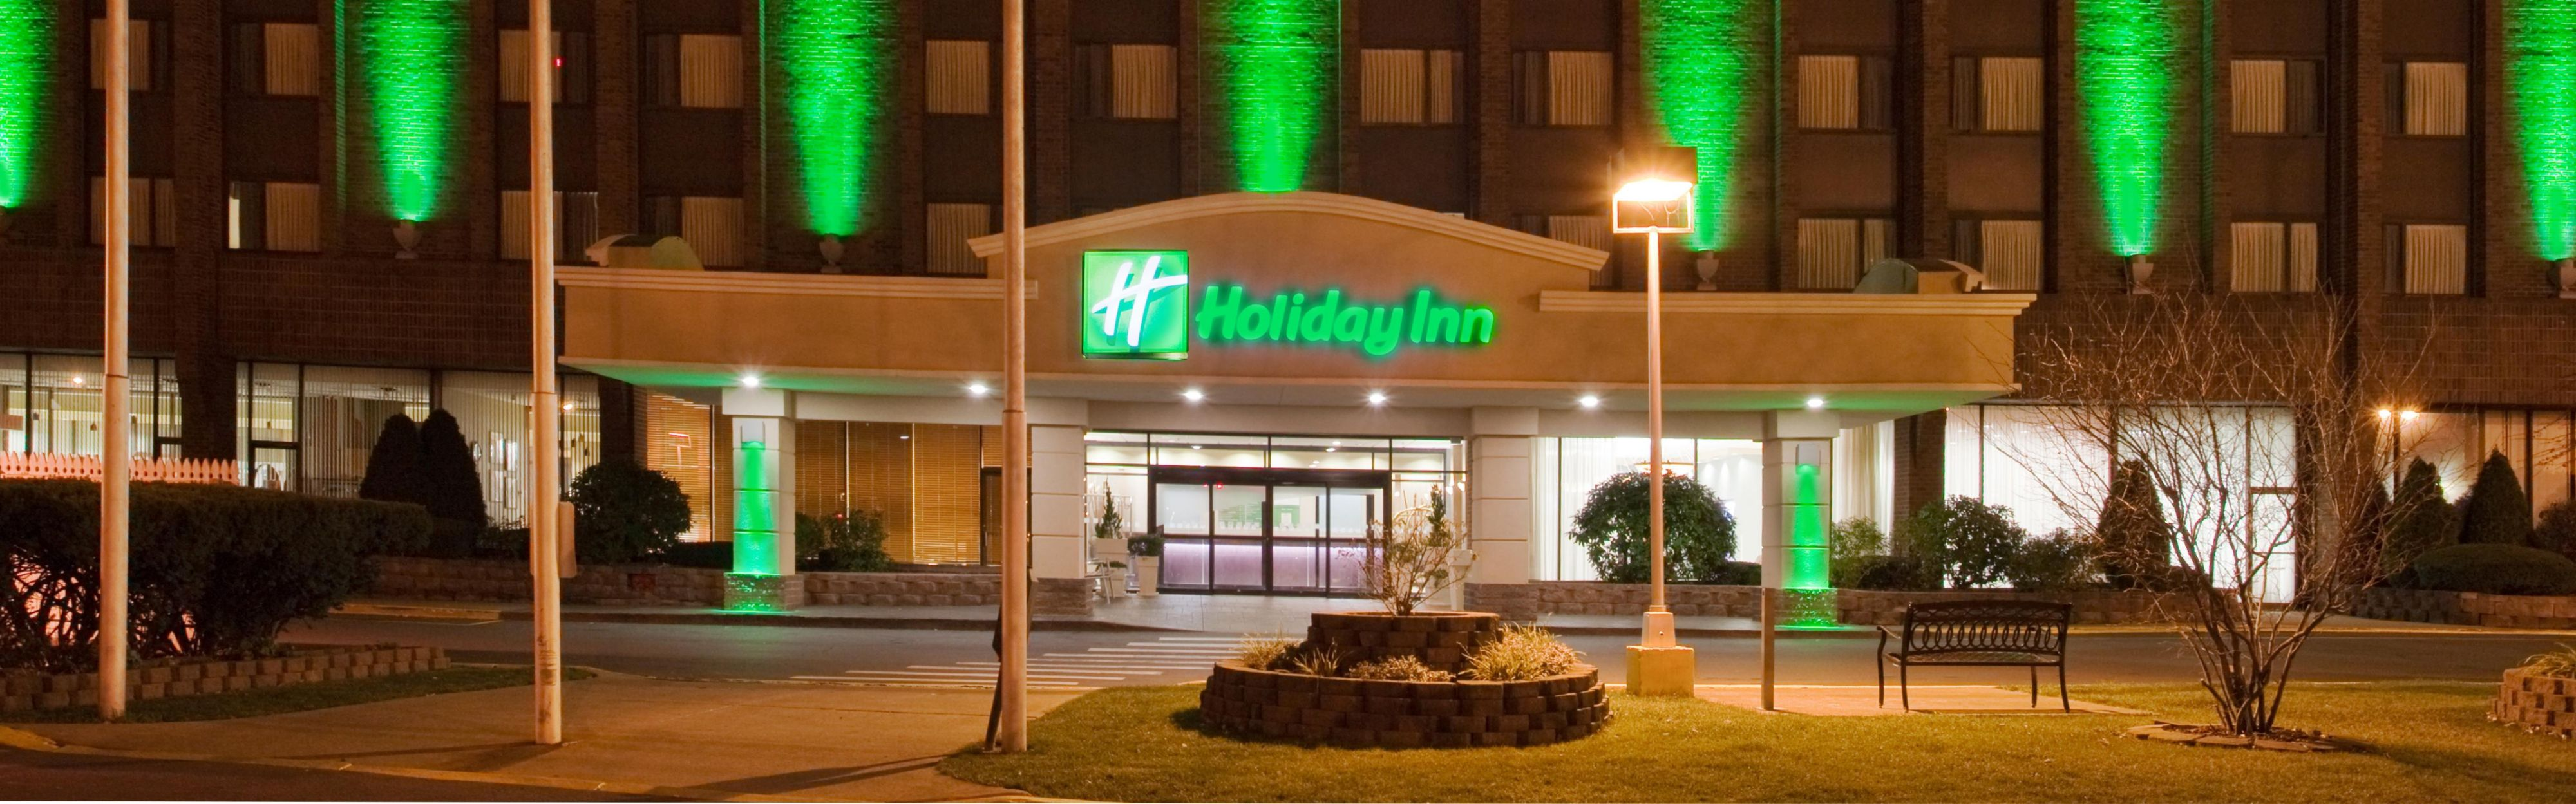 Holiday Inn Binghamton Downtown image 0